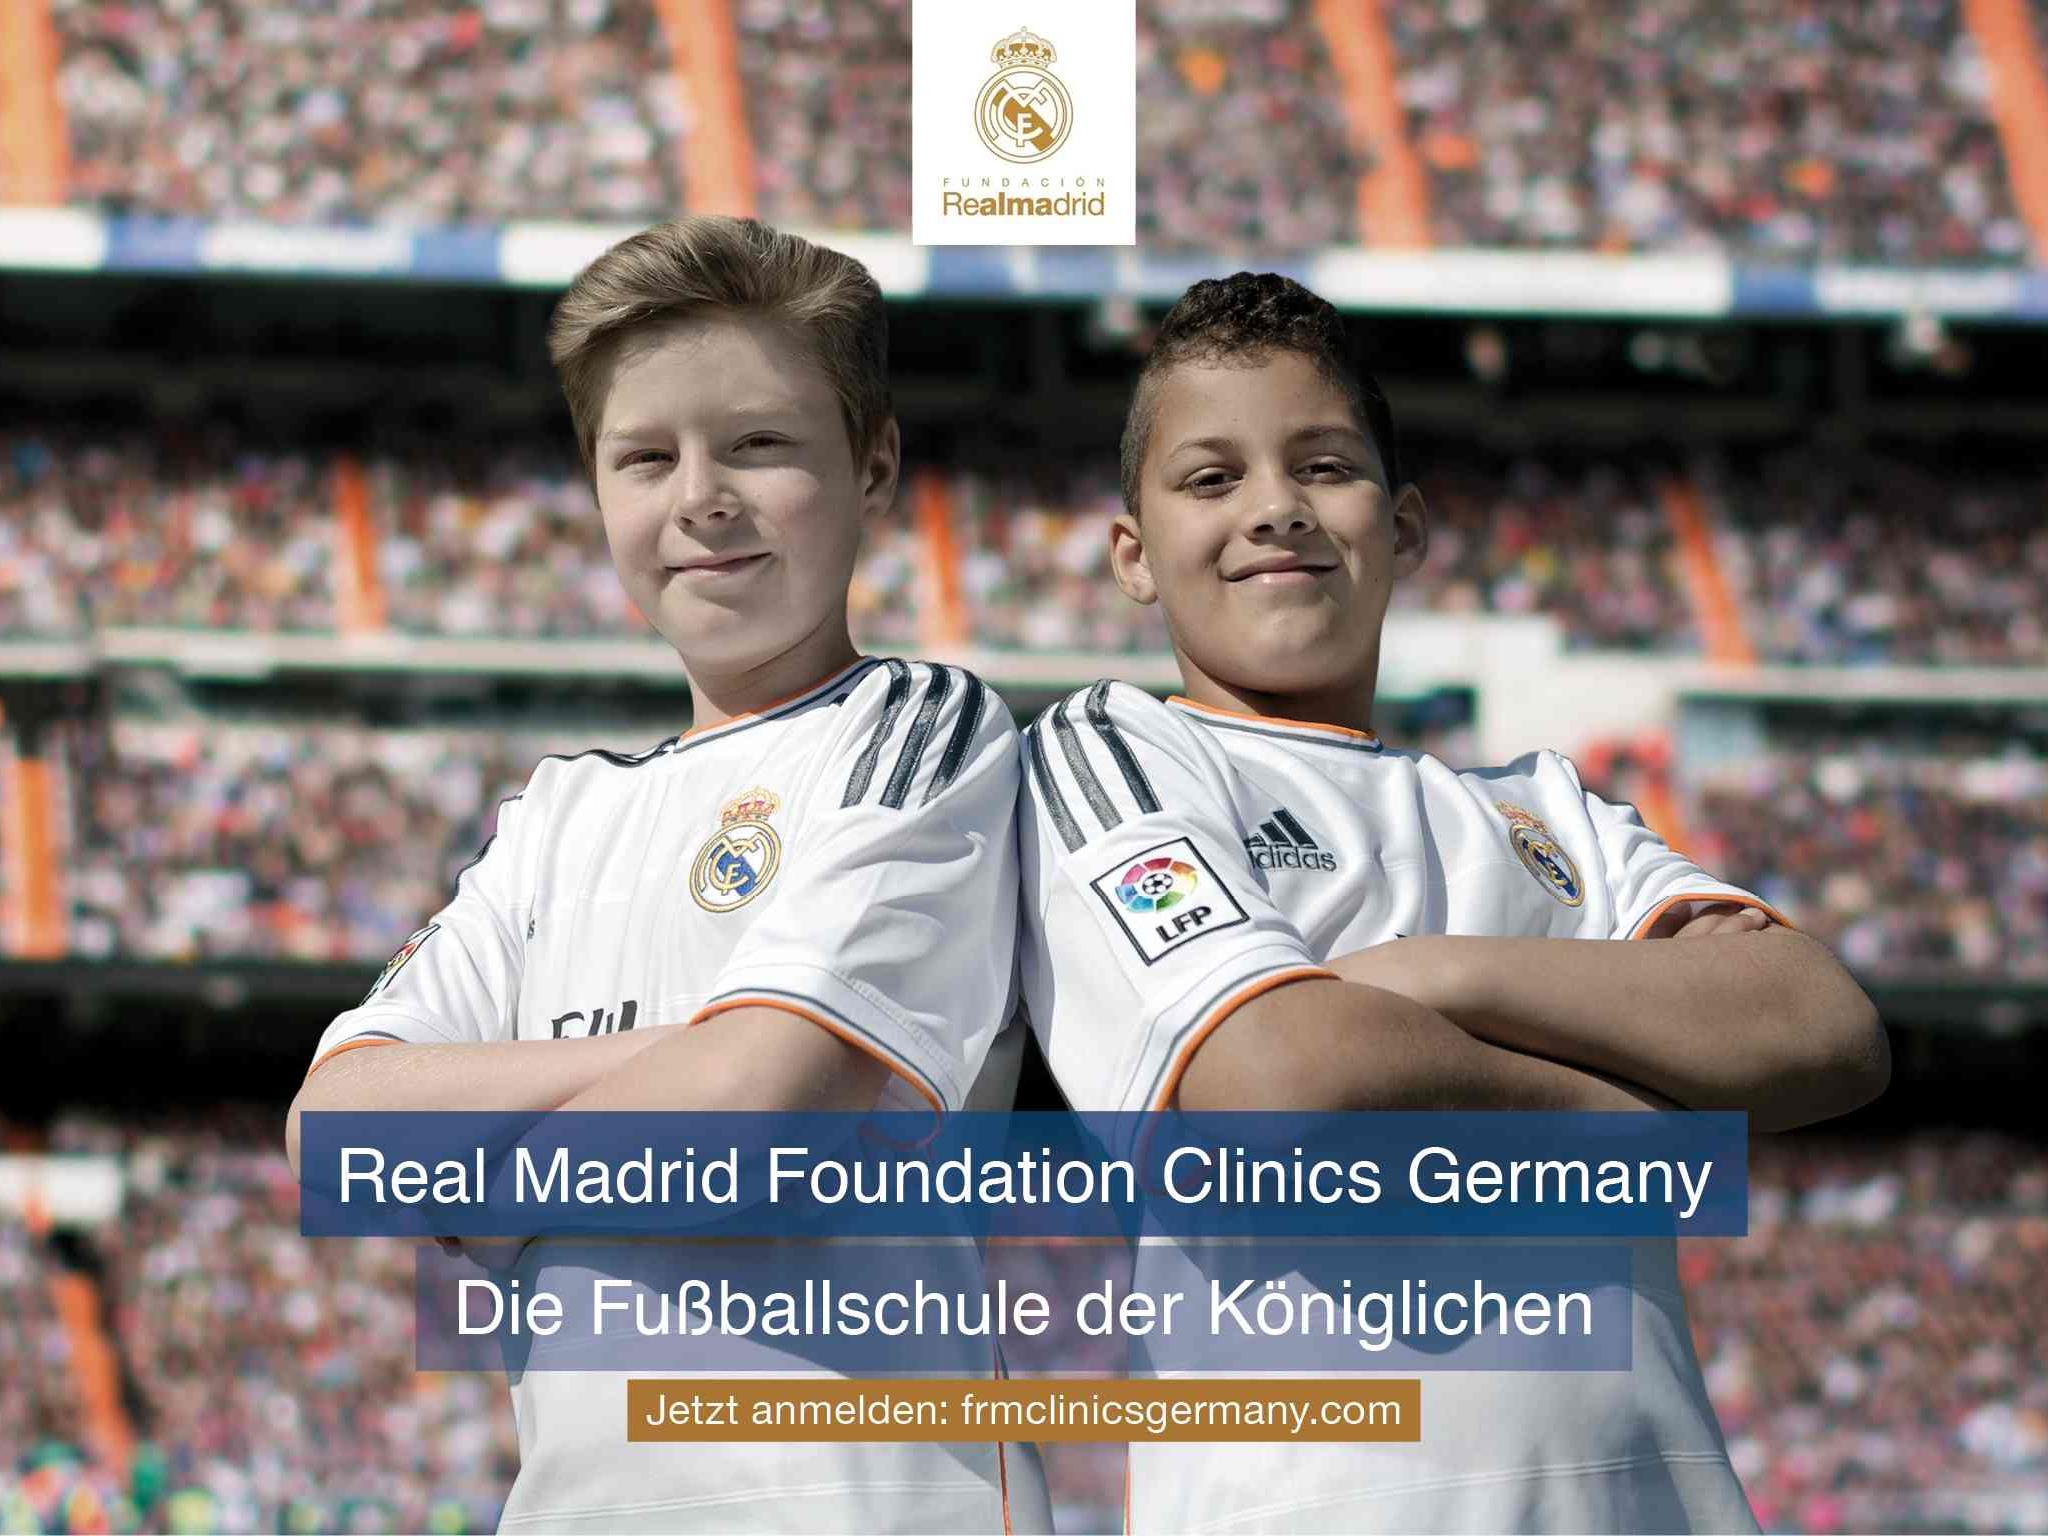 Real Madrid Camp Klostertal